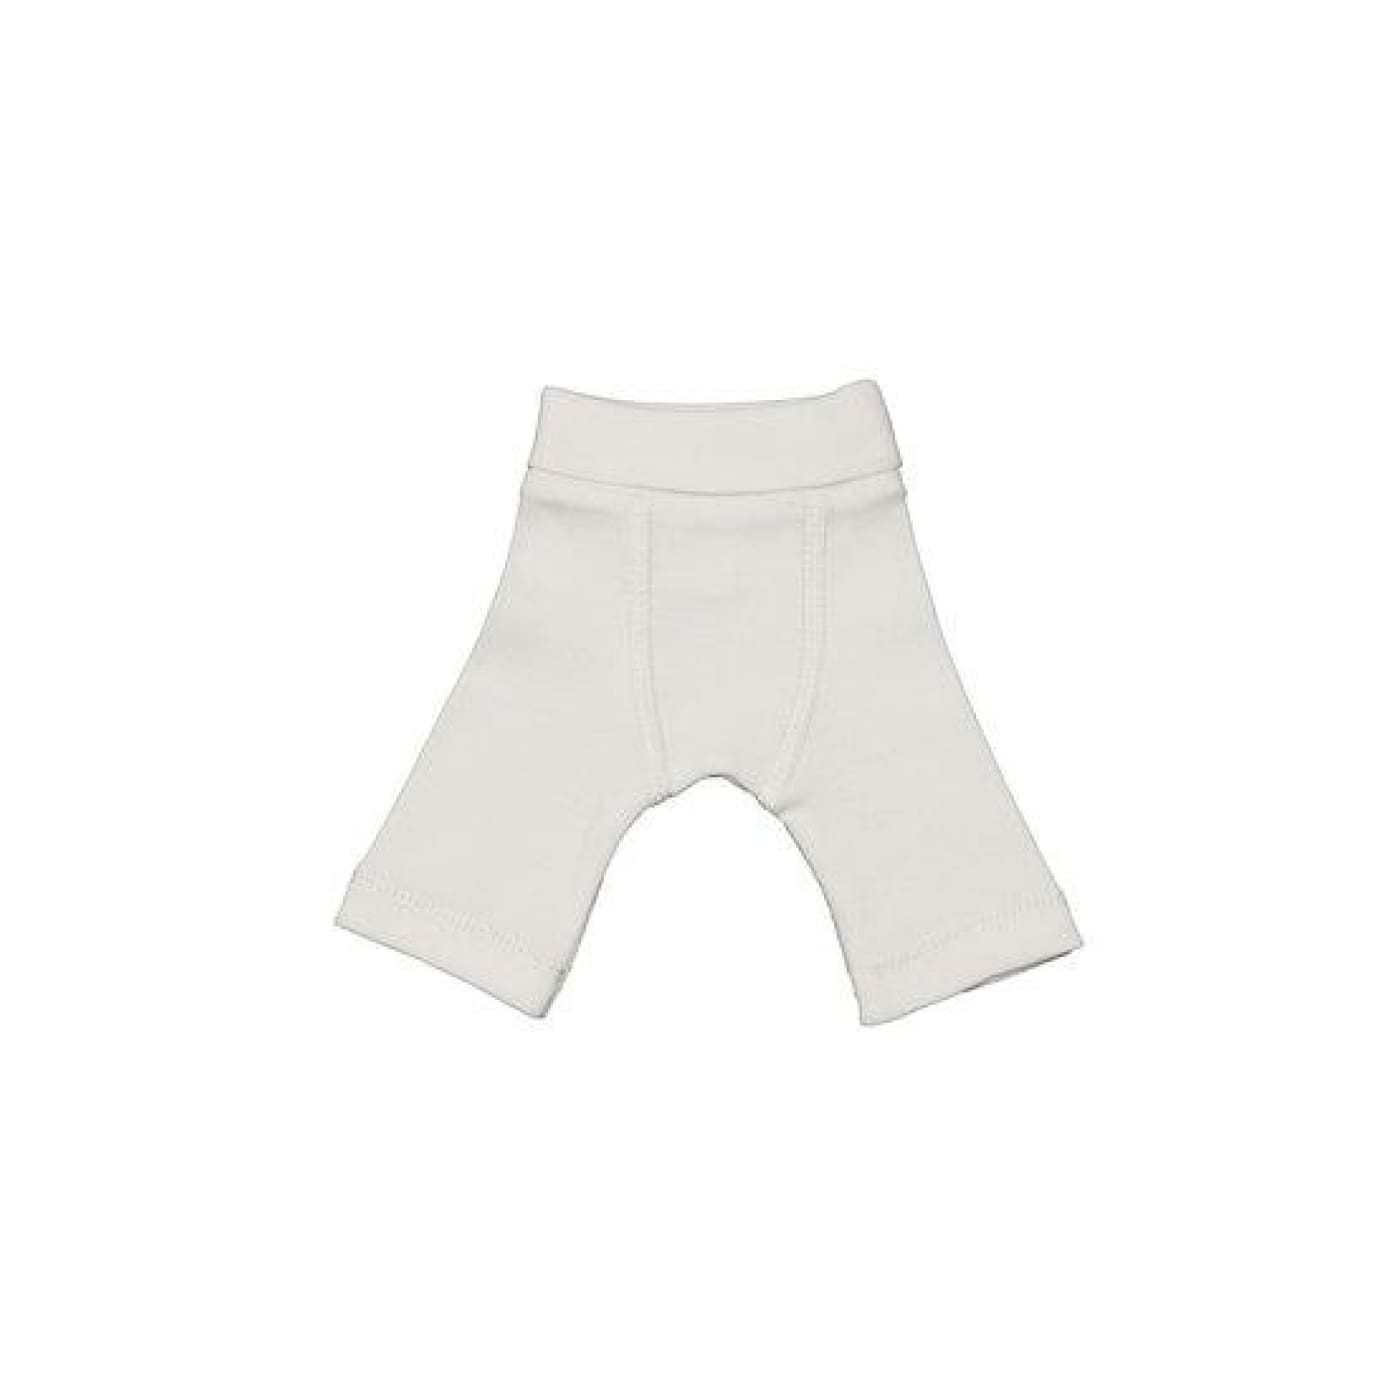 Earlybirds Pants - Ivory M - BABY & TODDLER CLOTHING - BODYSUITS/SETS/MIX-MATCH